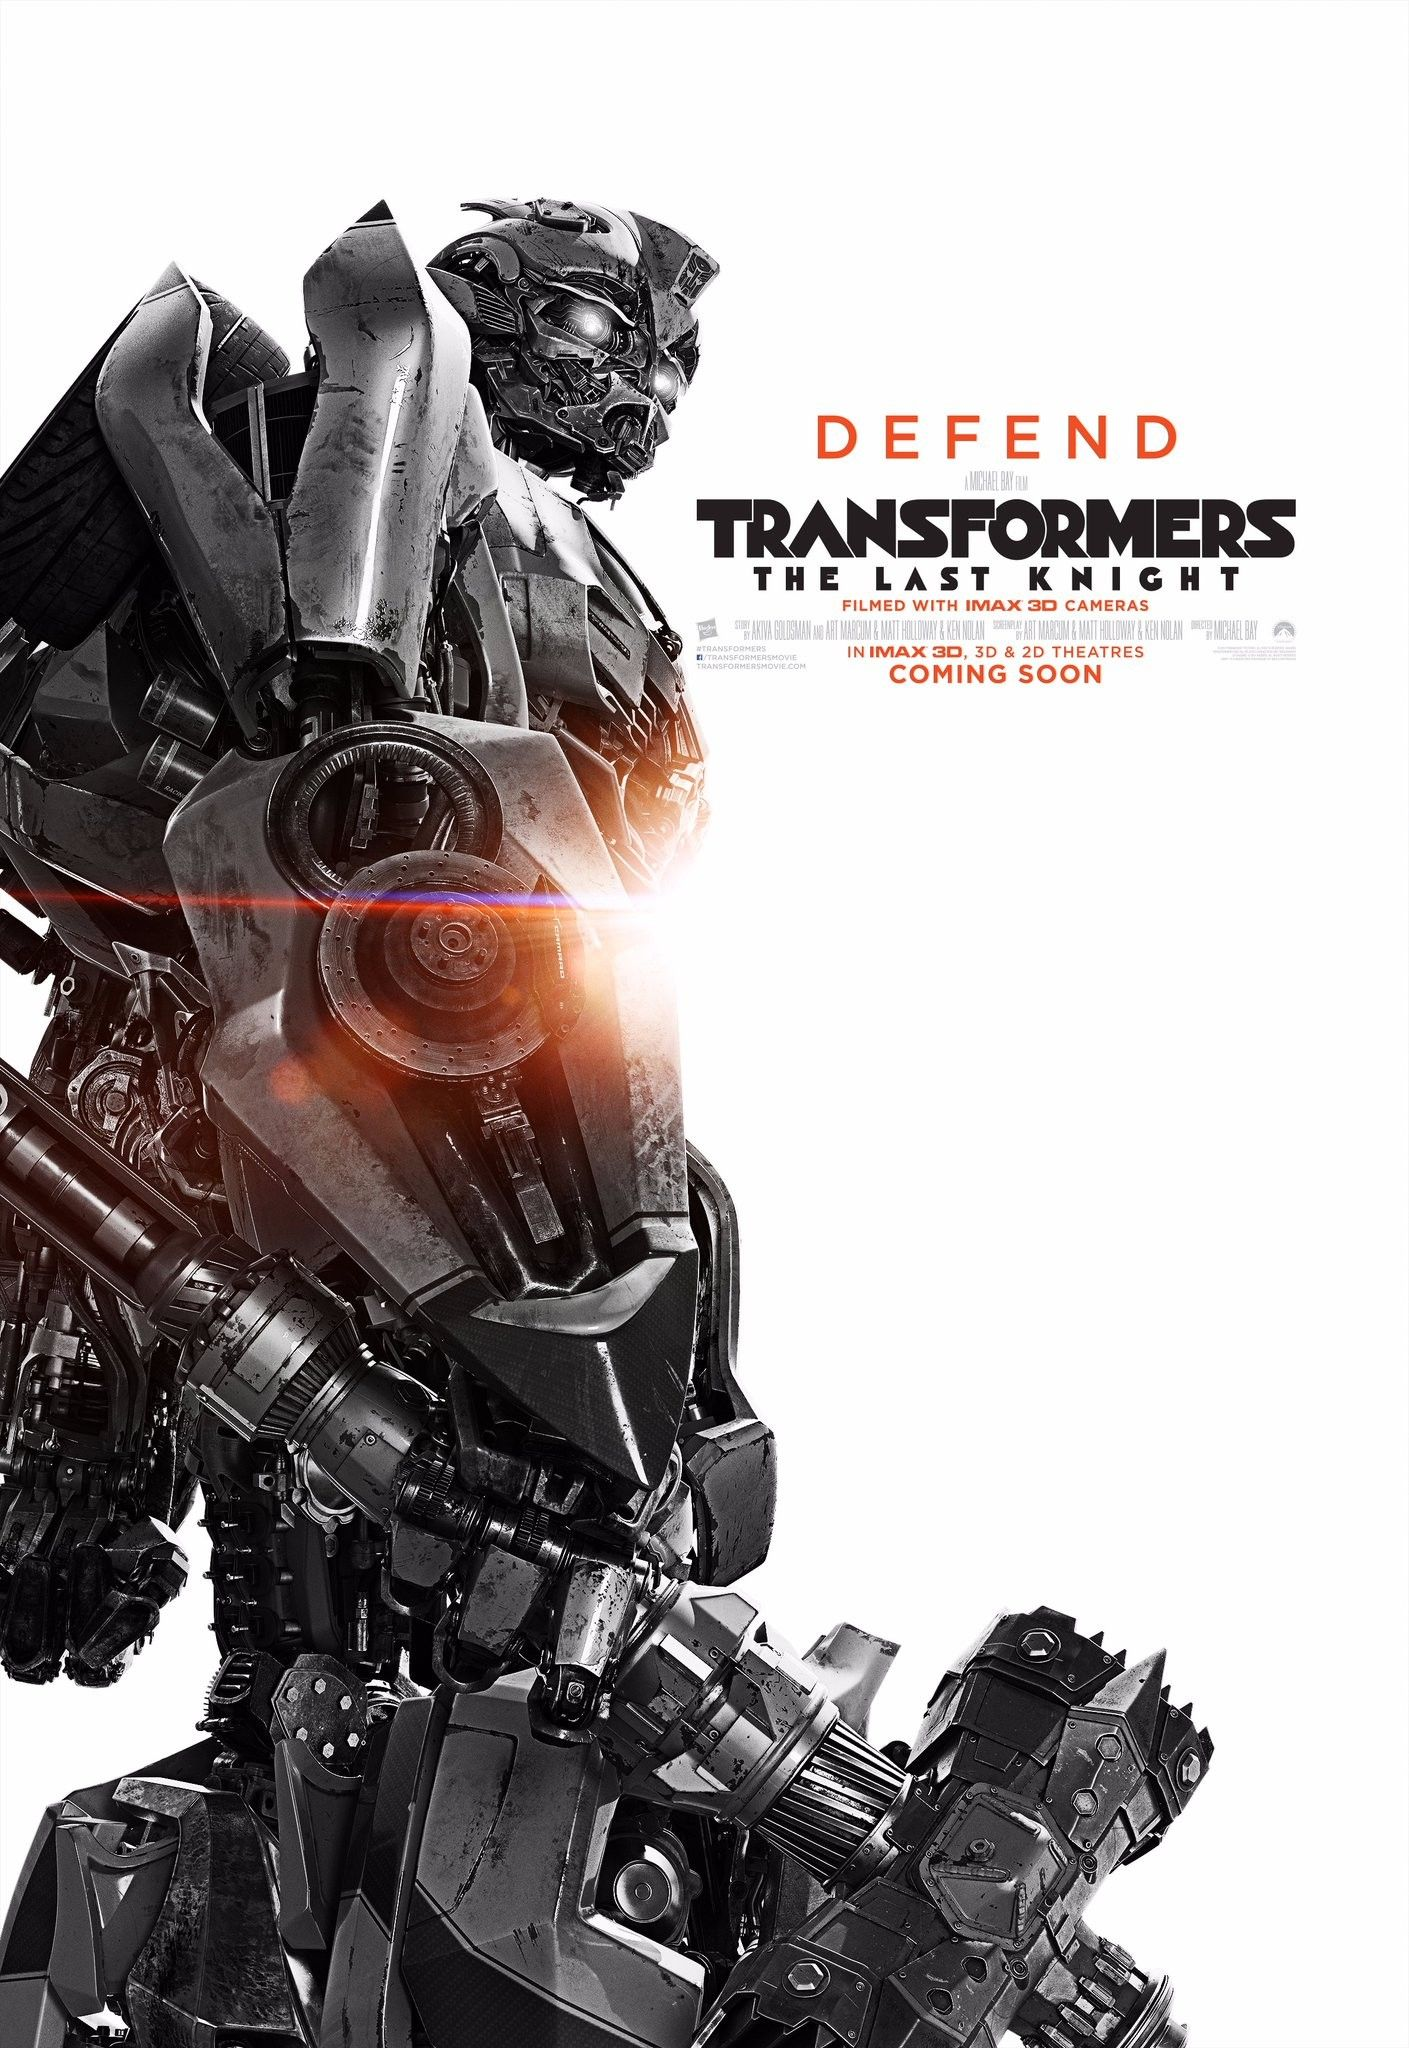 Transformers full movies free download